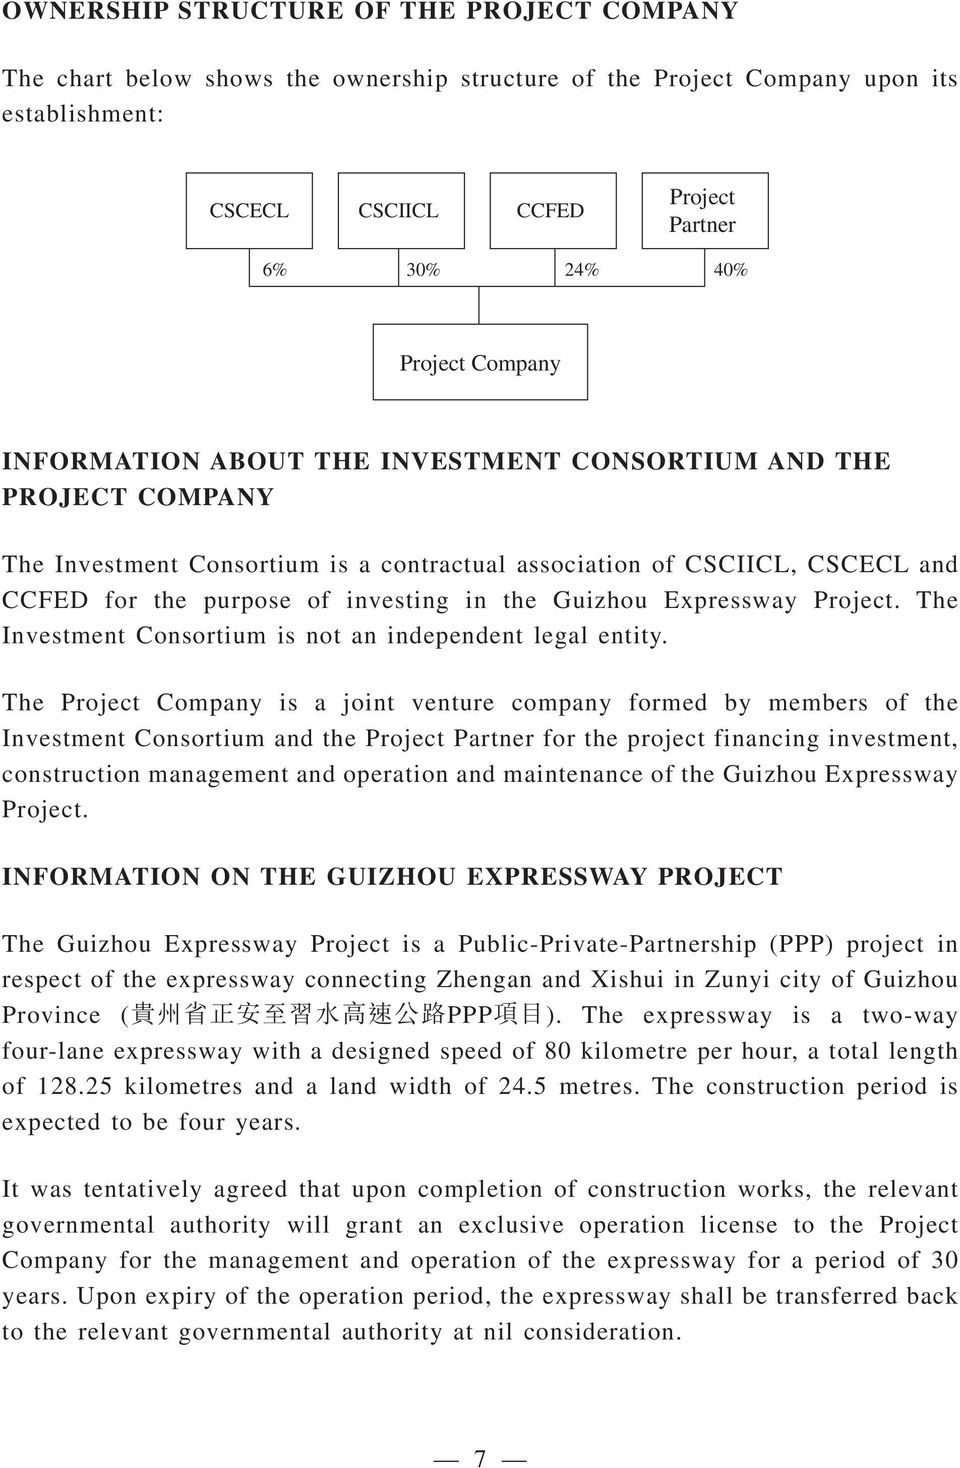 Guizhou Expressway Project. The Investment Consortium is not an independent legal entity.